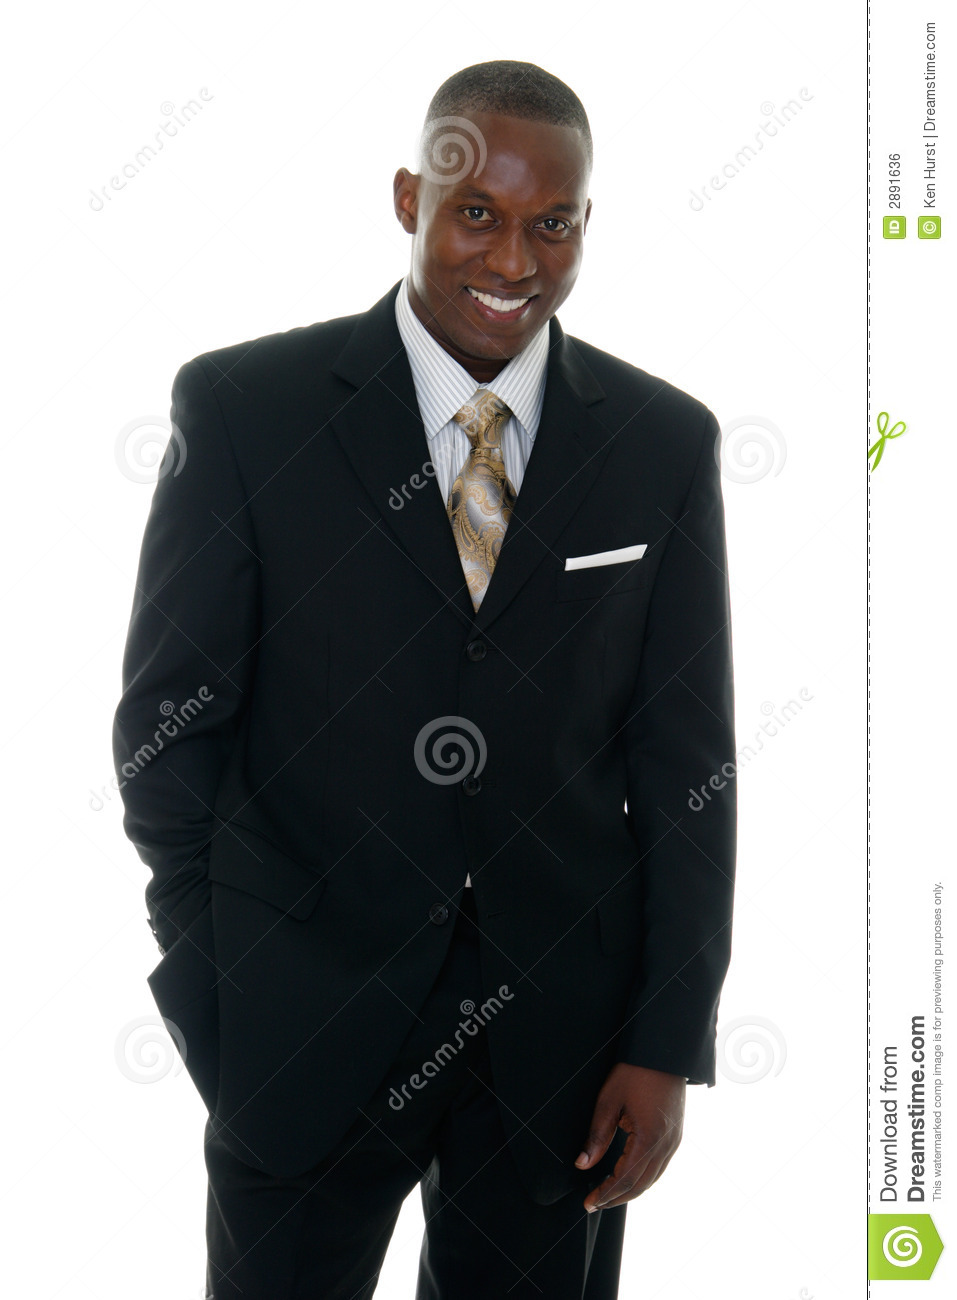 business-man-black-suit-3-2891636.jpg